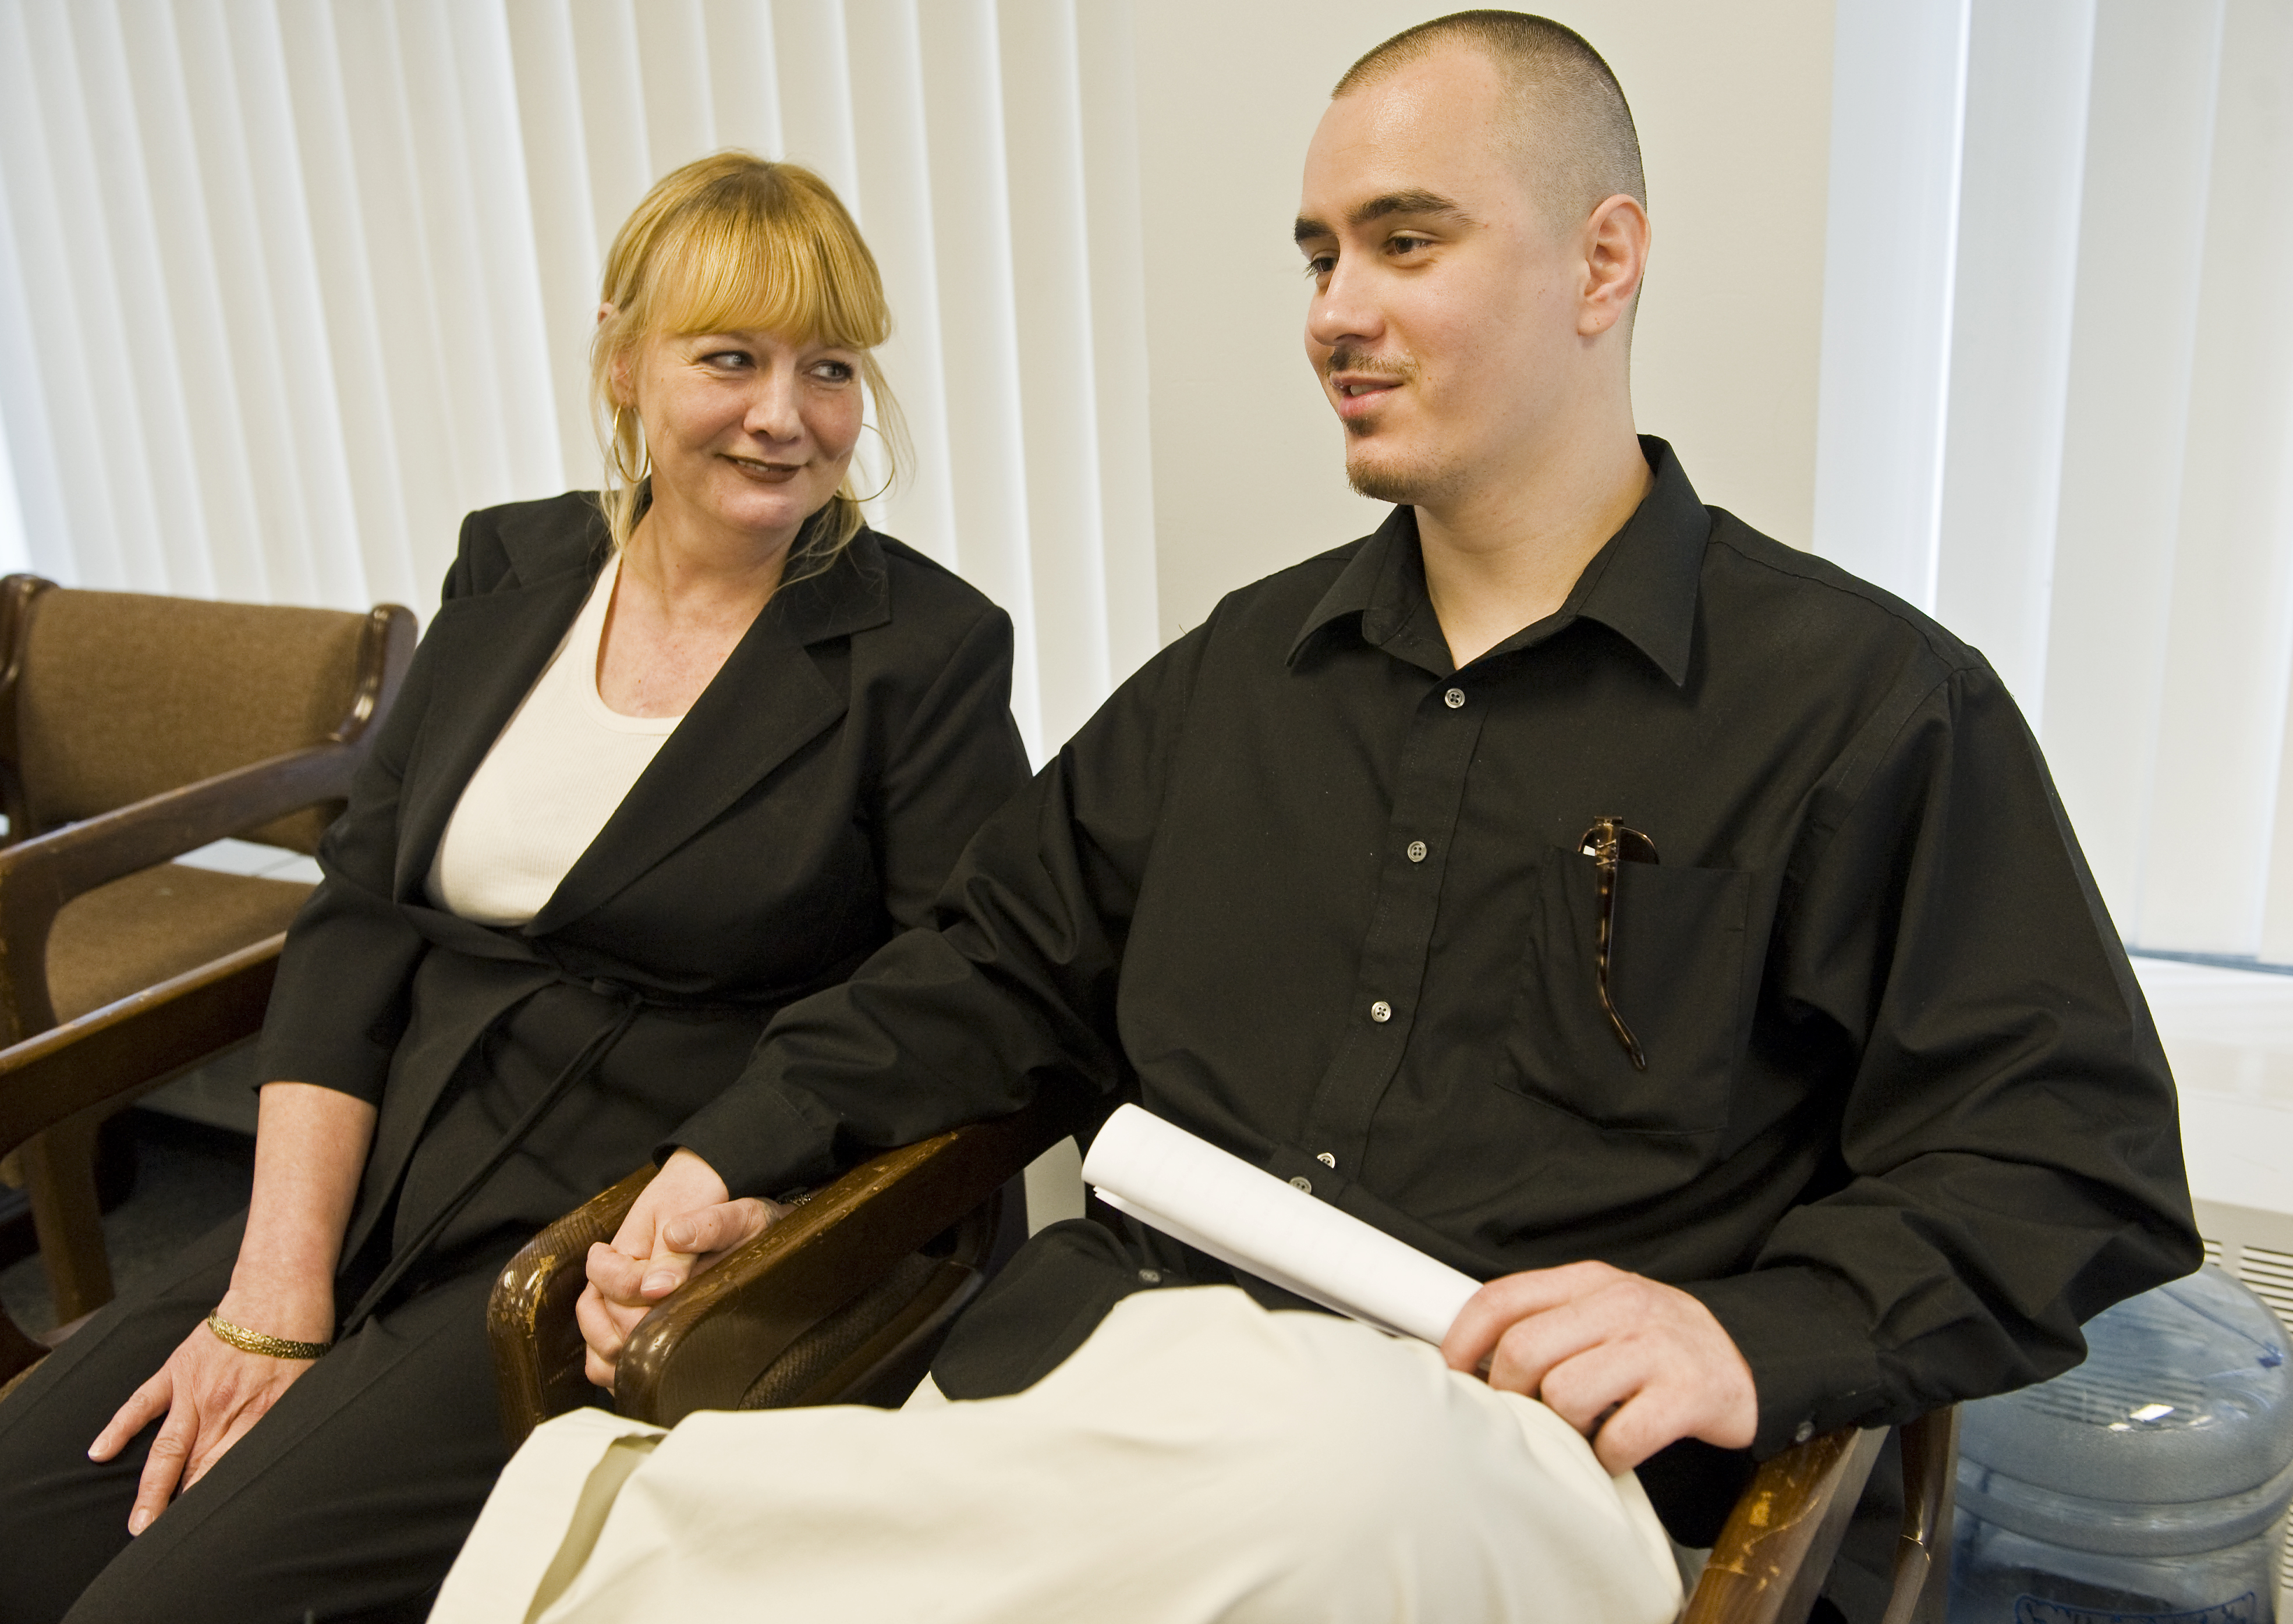 Thaddeus Jimenez, 30, sits with his mom Victoria Jimenez